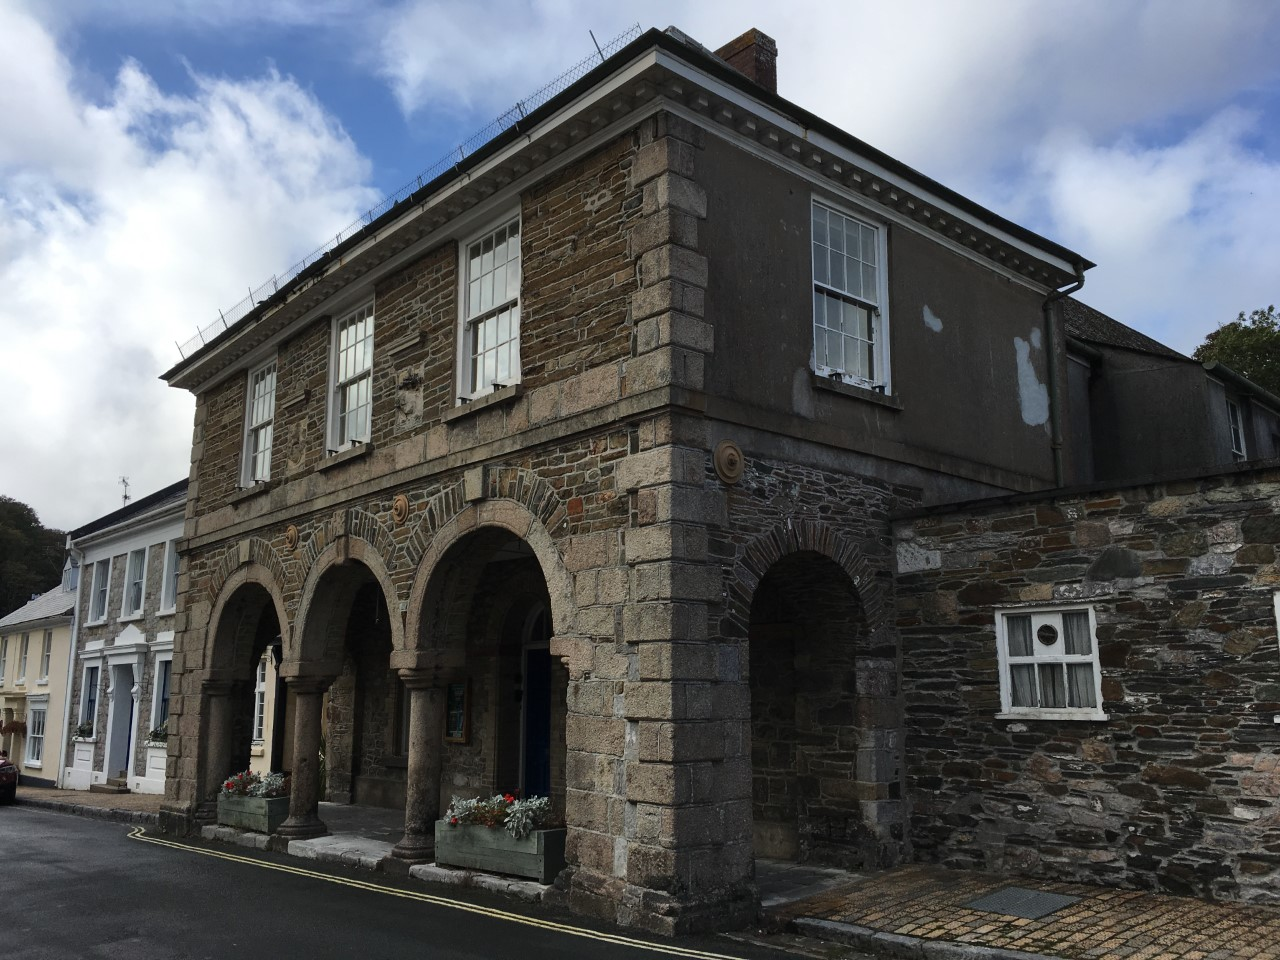 Plympton Erle, Guildhall, exterior from side